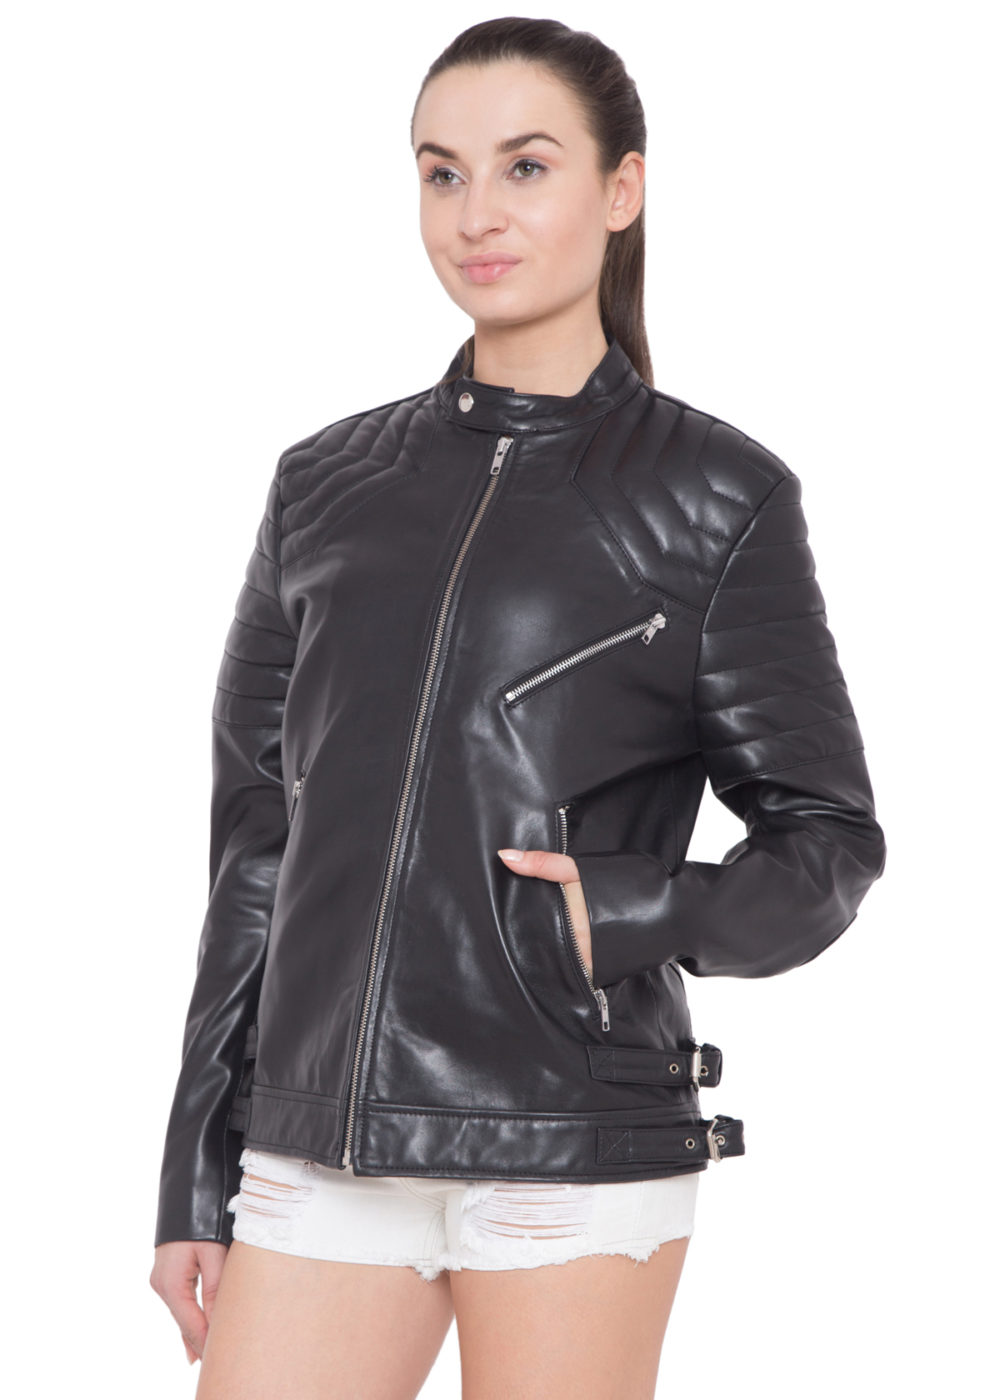 BLACK FULL LEATHER JACKET-WOMEN